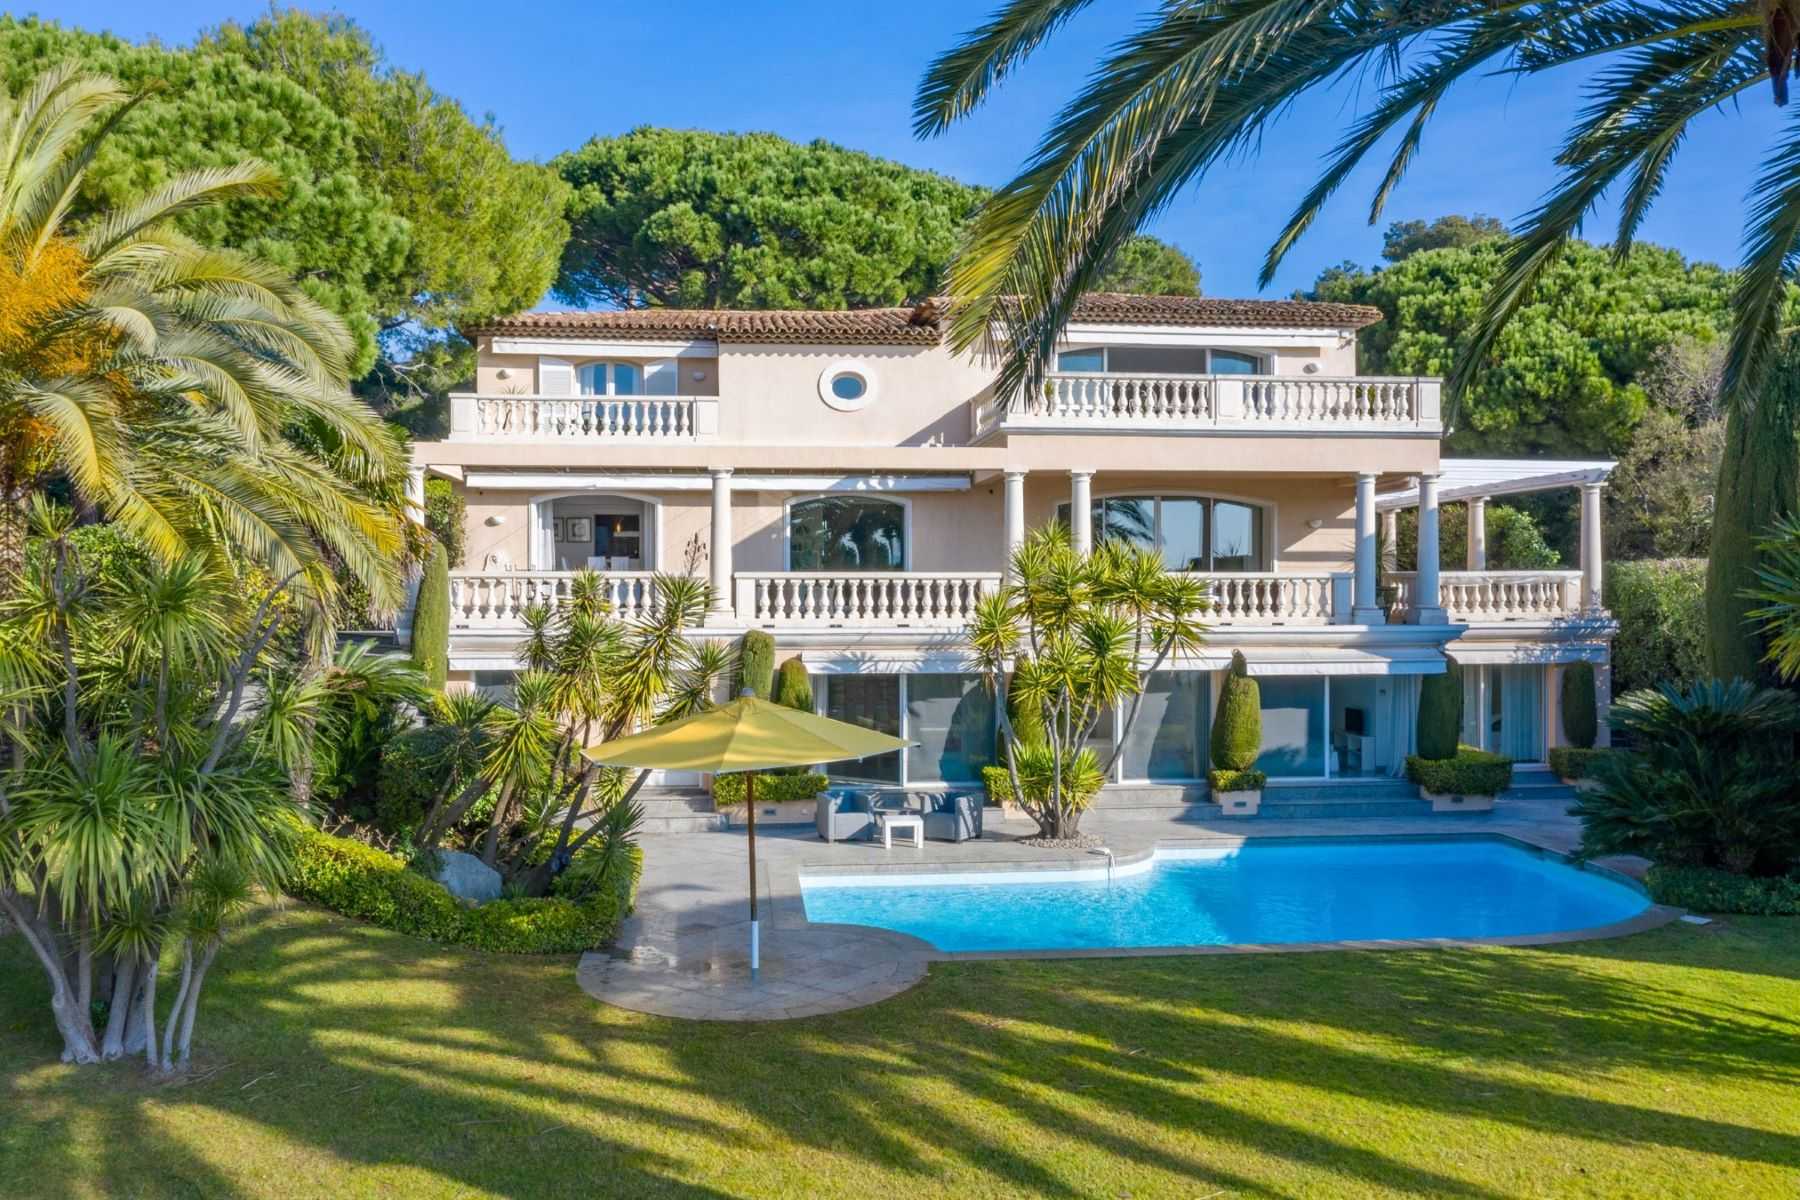 Single Family Homes for Sale at Beautiful villa with panoramic sea view and direct access to the beach Ramatuelle, Provence-Alpes-Cote D'Azur 83350 France